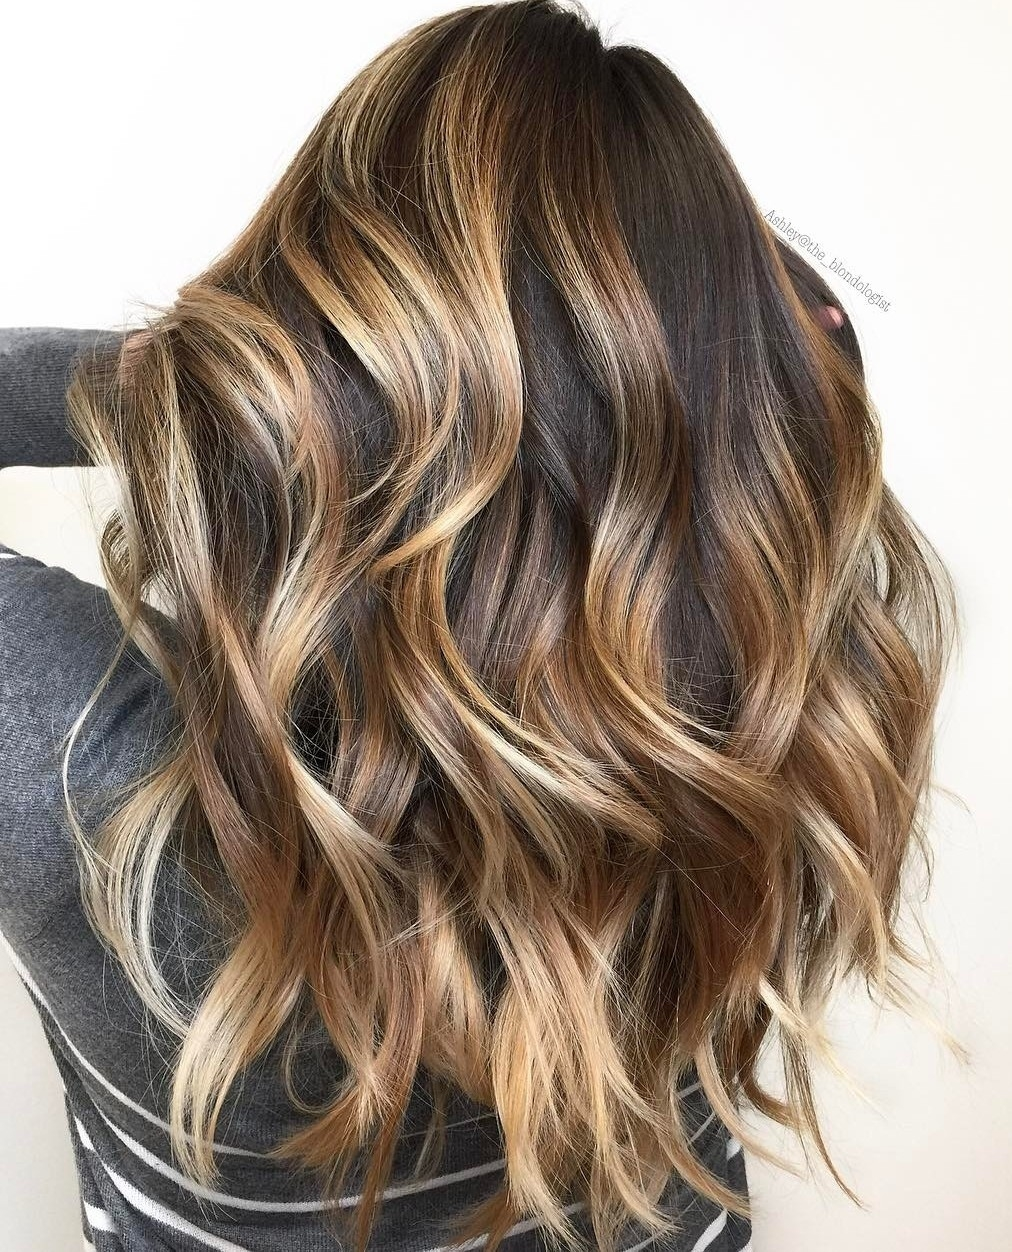 Hairstyles And Haircuts For Thick Hair In 2018 — Therighthairstyles pertaining to Haircuts For Thick Long Hair 2017